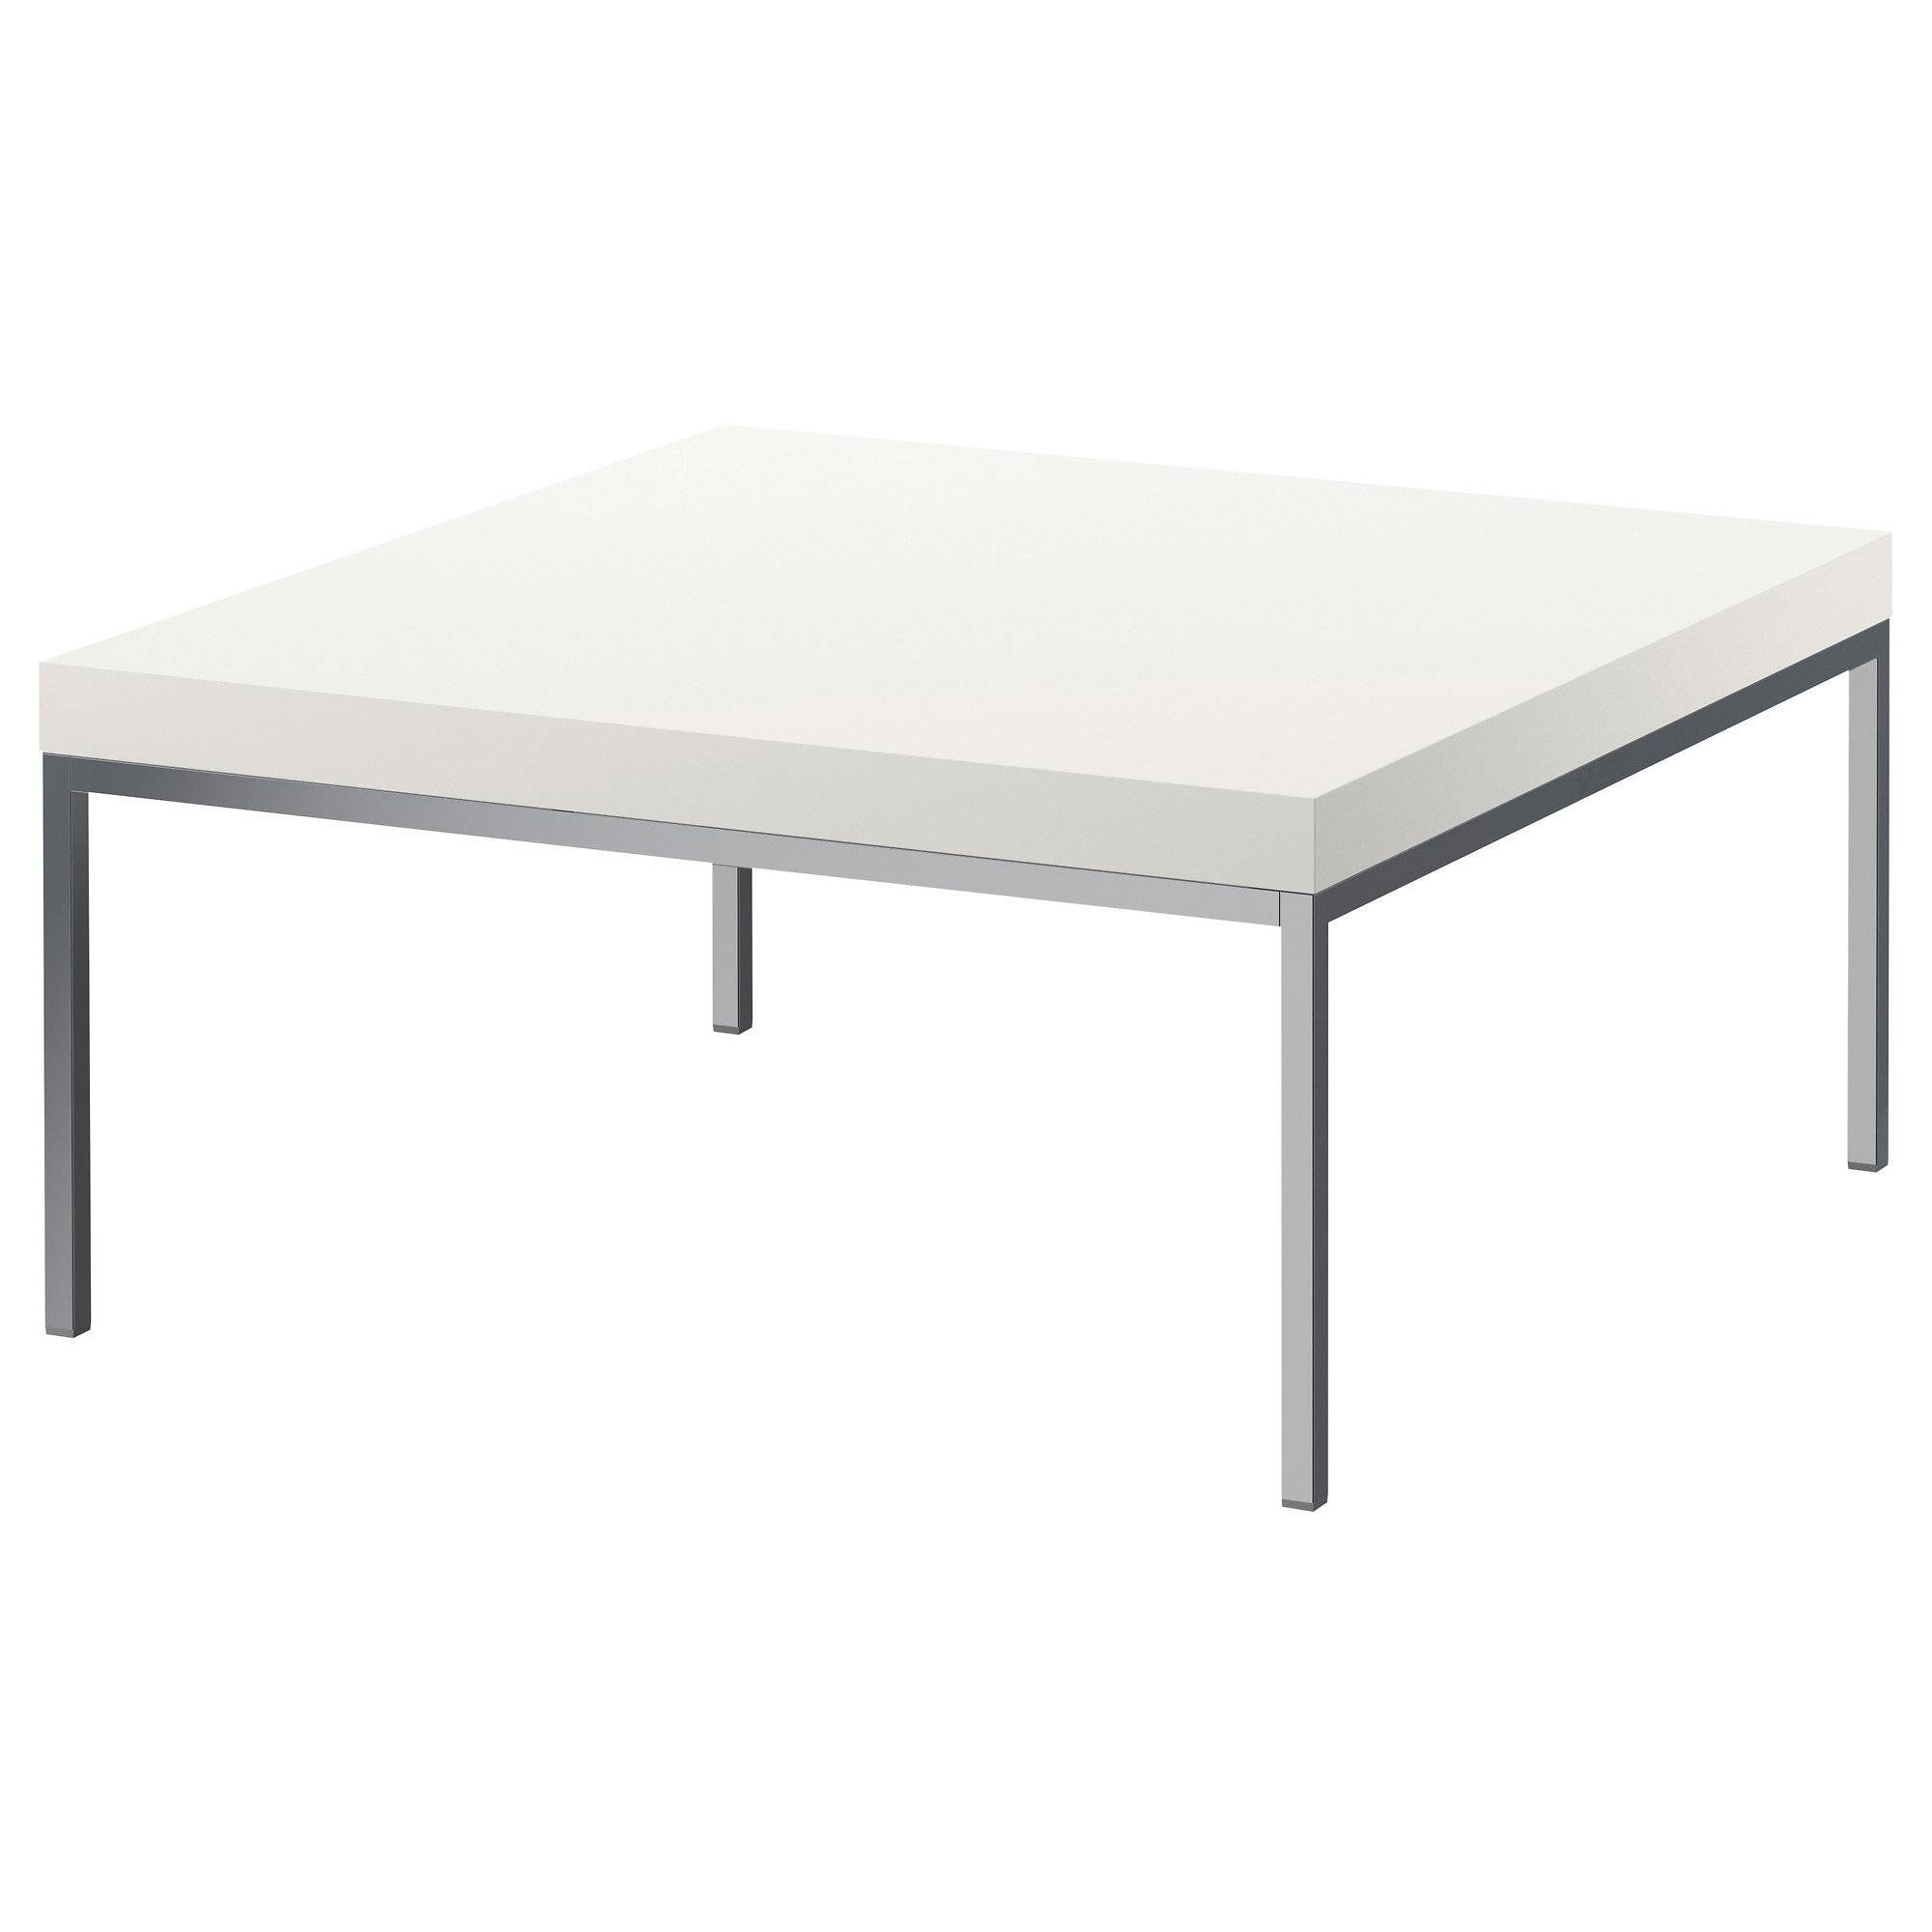 Coffee Table: Amazing Square Coffee Table Ikea Design Ideas Small inside White Square Coffee Table (Image 5 of 30)